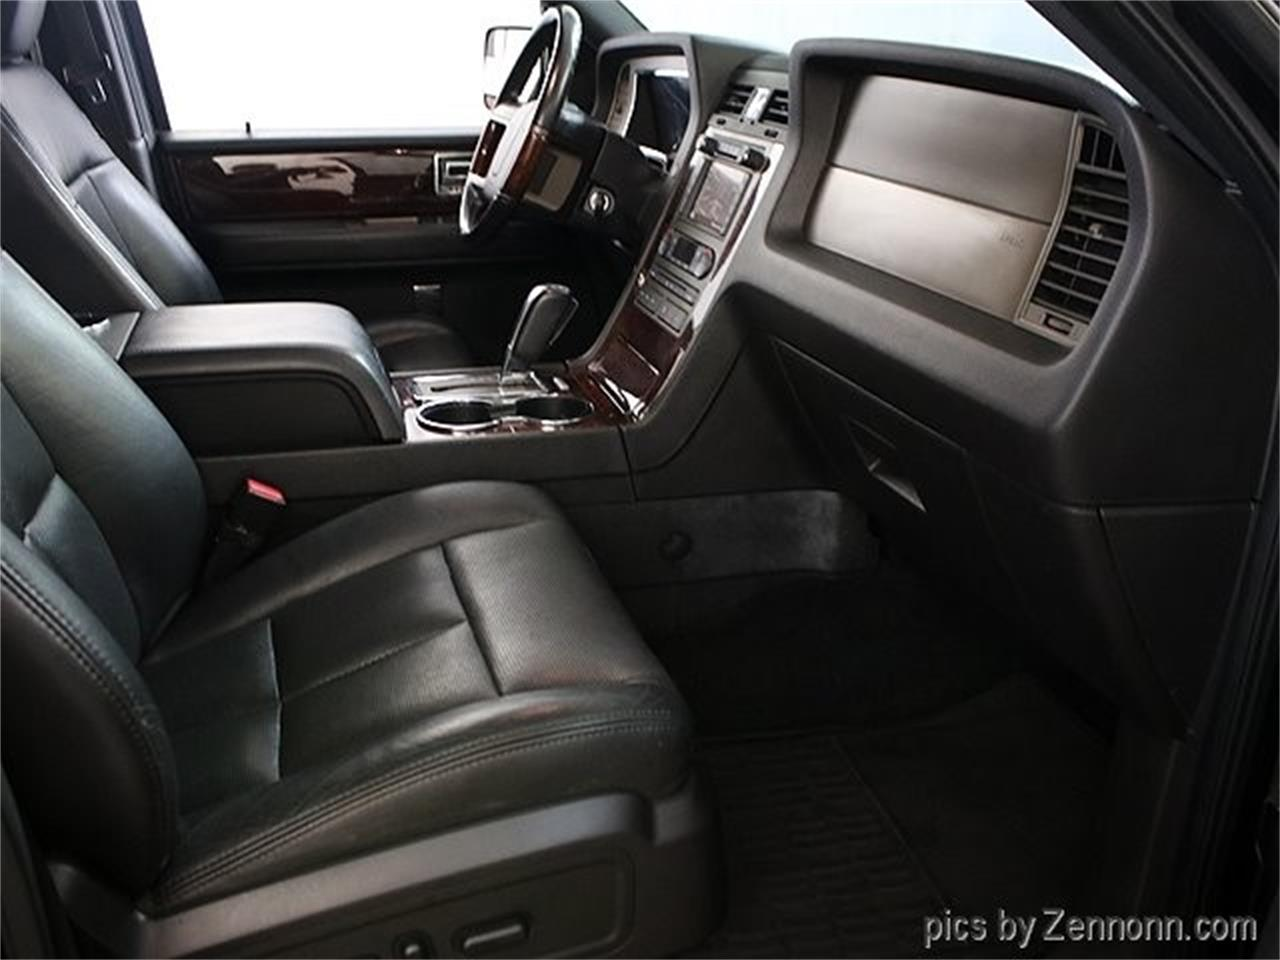 Large Picture of '12 Lincoln Navigator located in Addison Illinois - $16,990.00 - Q860